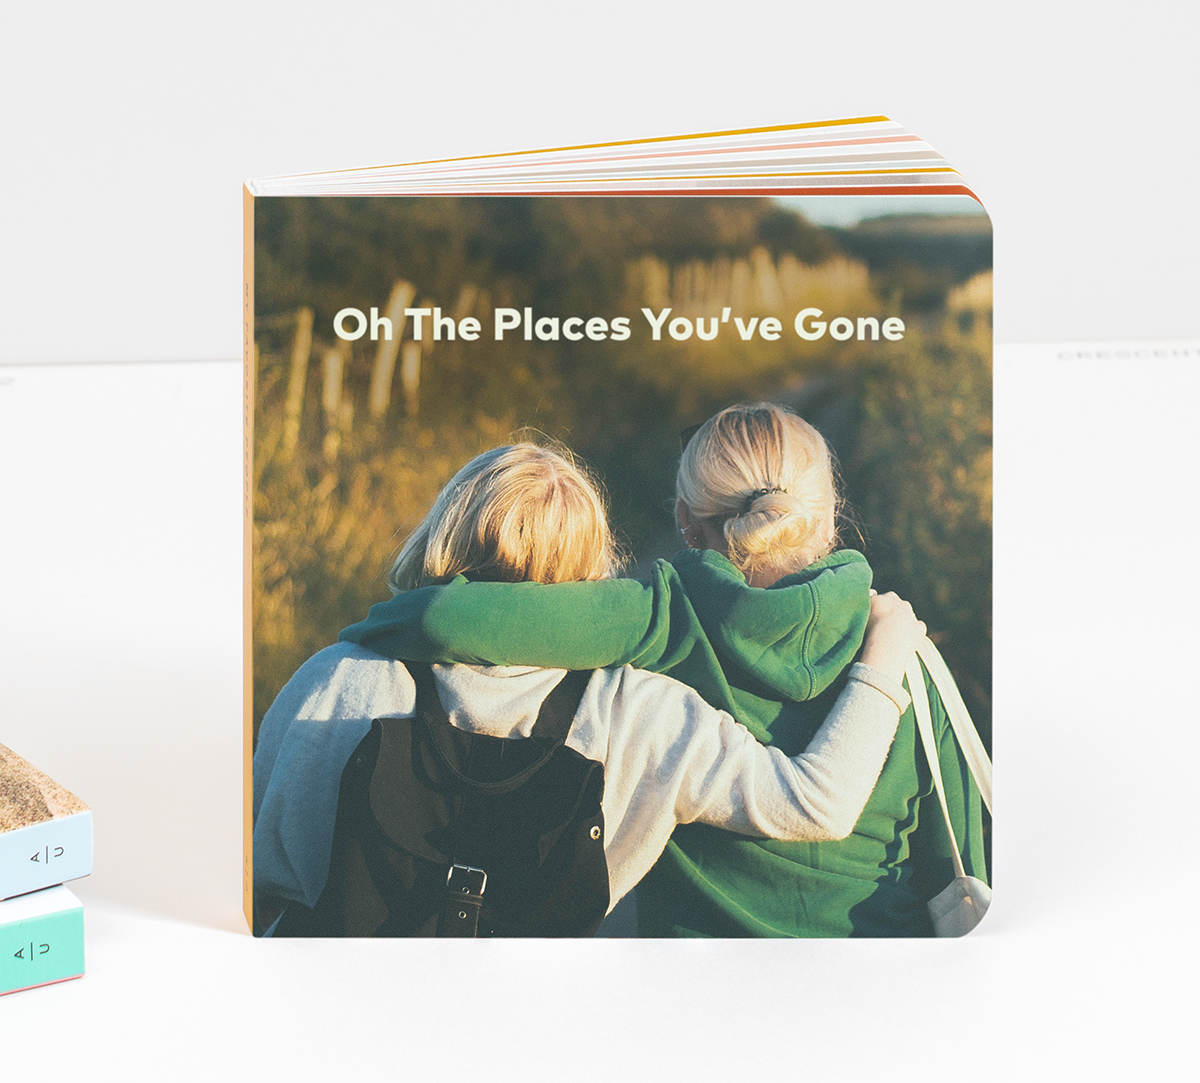 Artifact Uprising Baby Board Book titled Oh the Places You've Gone with photo of two young friends on cover